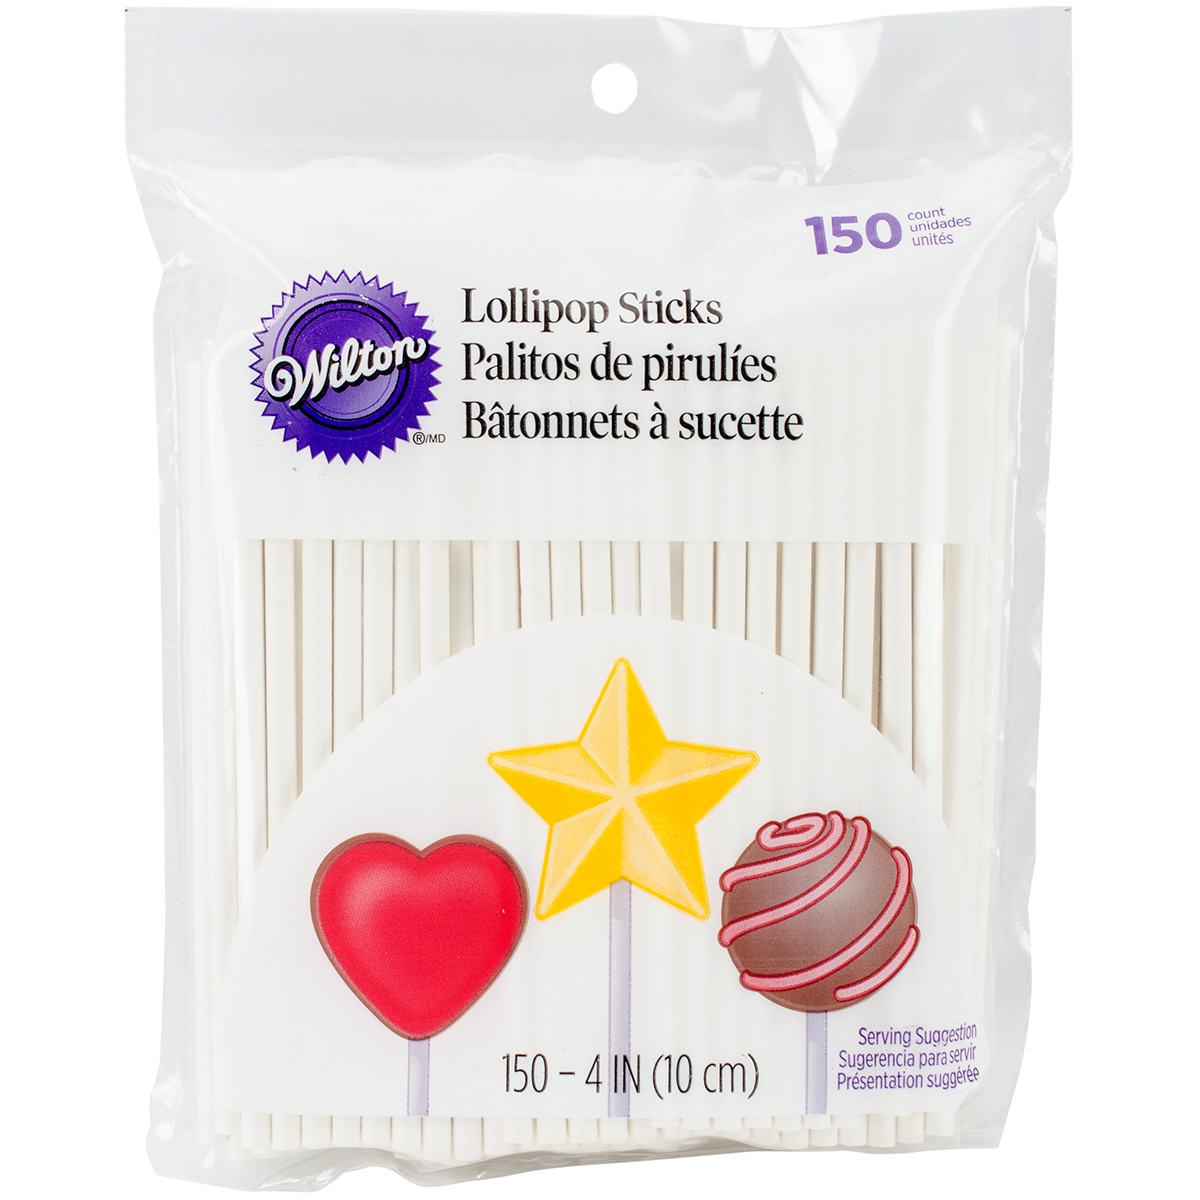 Lollipop Sticks 150